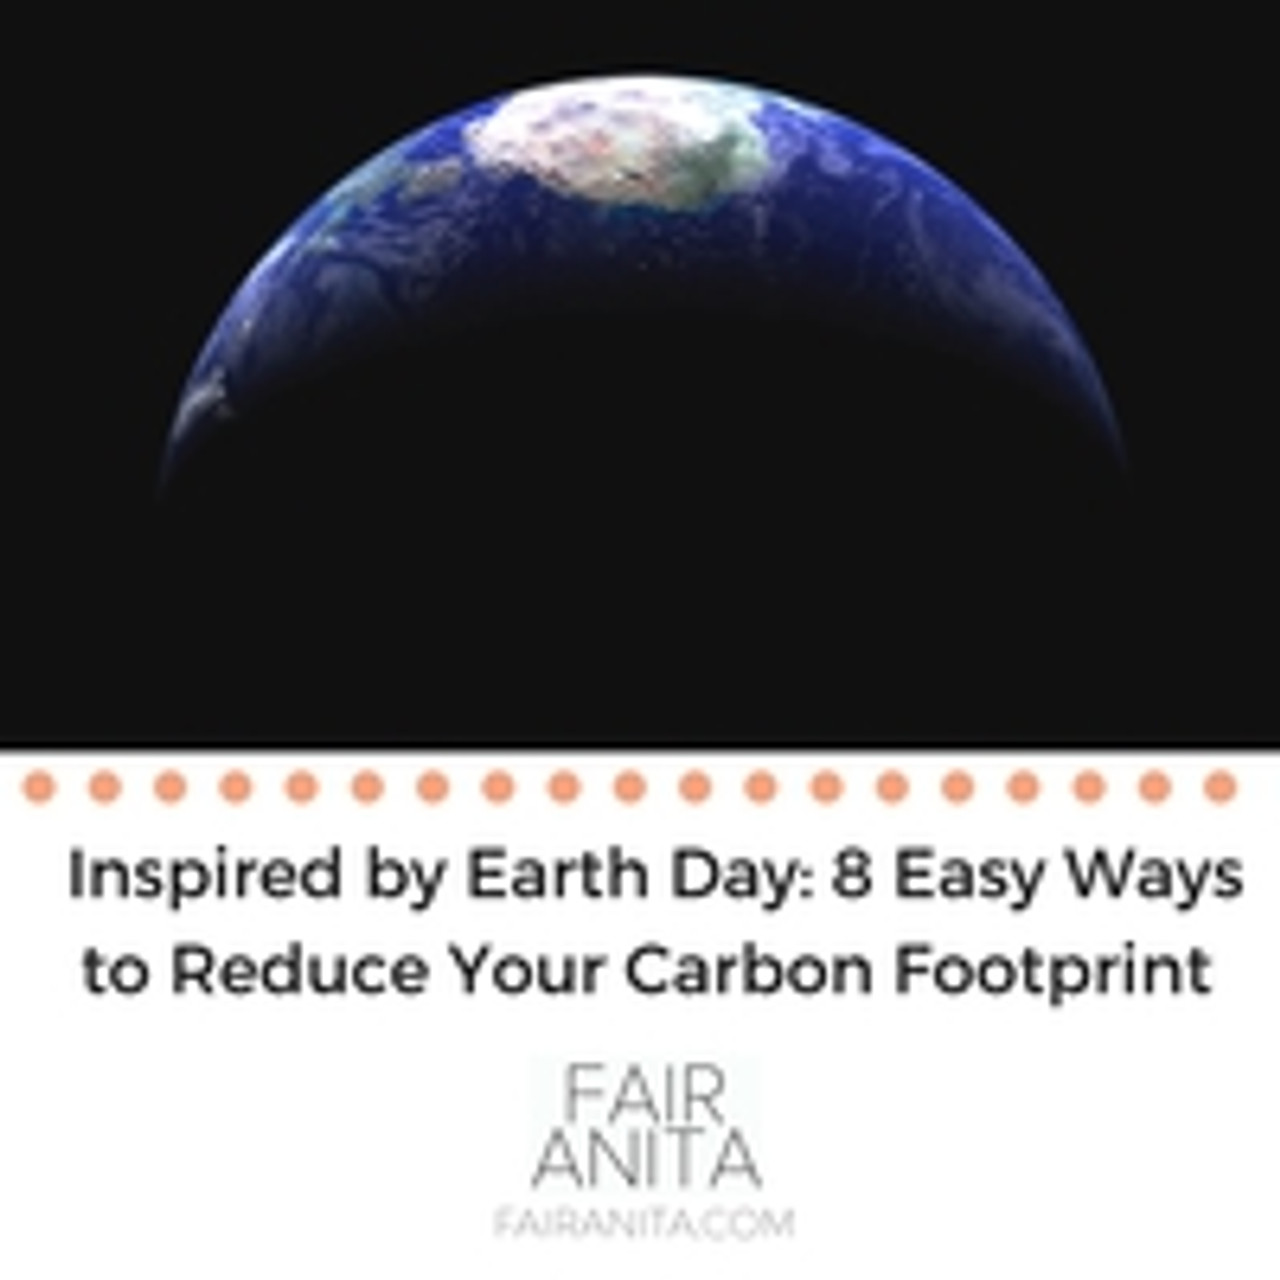 ​Inspired by Earth Day: 8 Easy Ways to Reduce Your Carbon Footprint